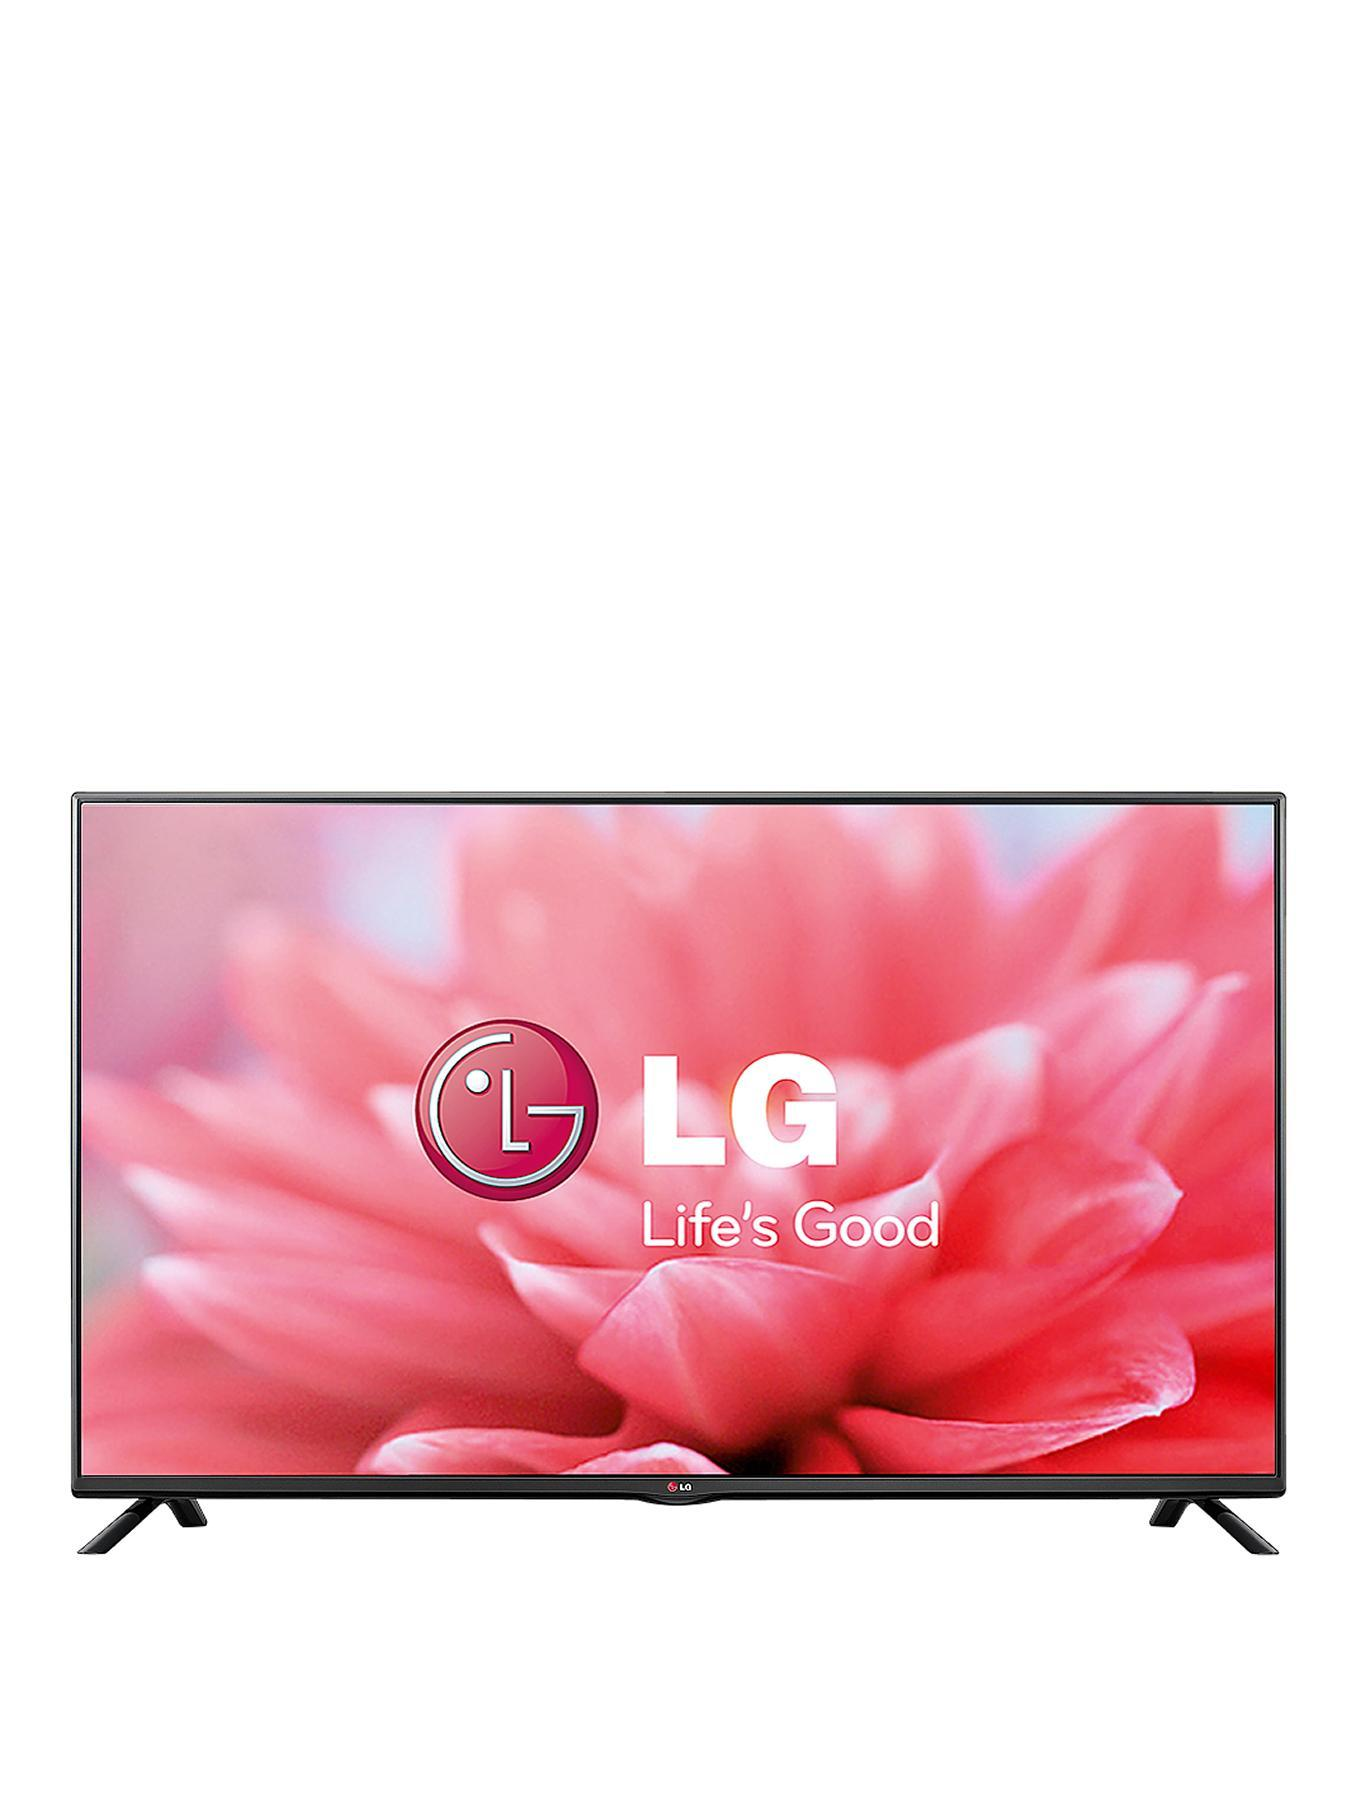 LG 49LB550V 49-inch Widescreen 1080p Full HD LED TV with Freeview HD